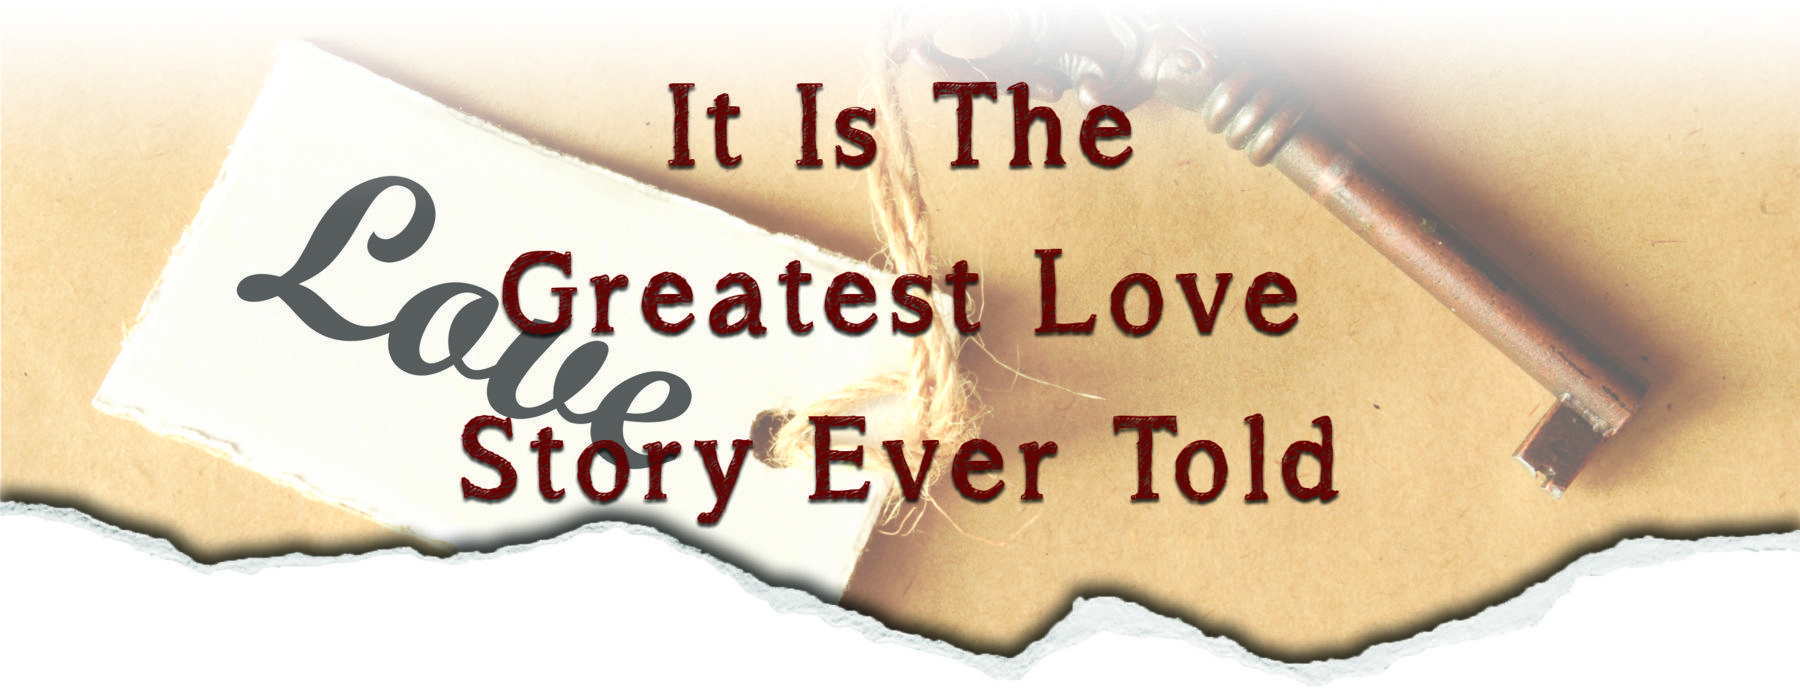 It Is The Greatest Love Story Ever Told